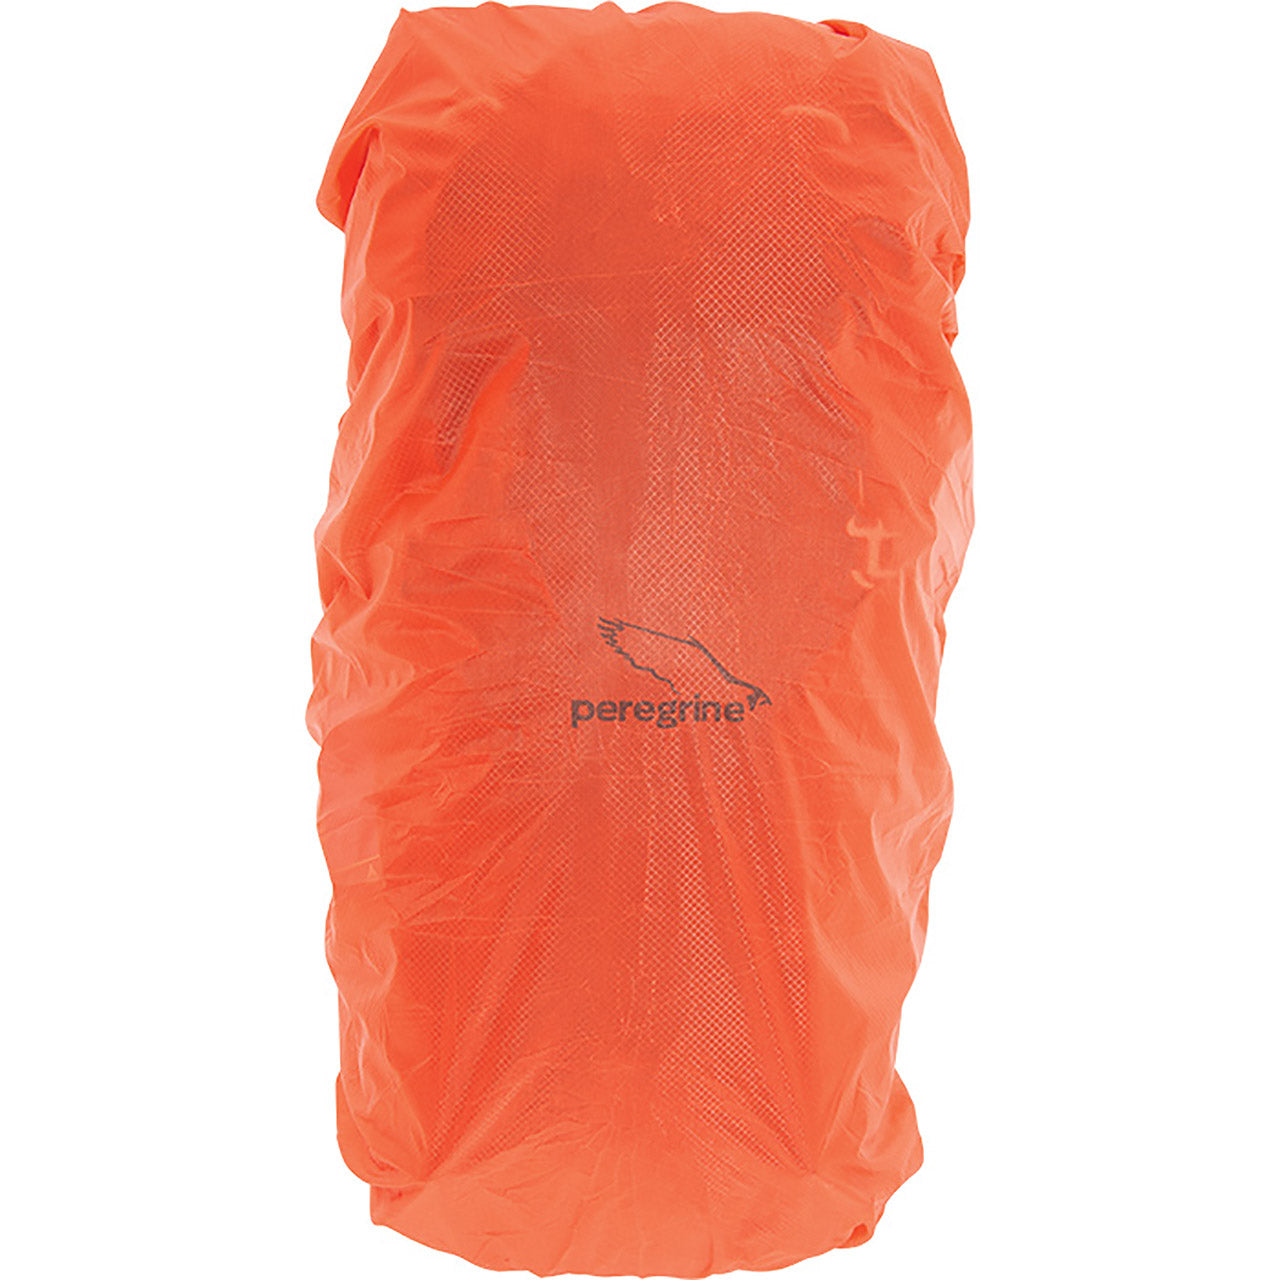 Peregrine Ultralight Backpack Rain Cover 15 to 35 Liter